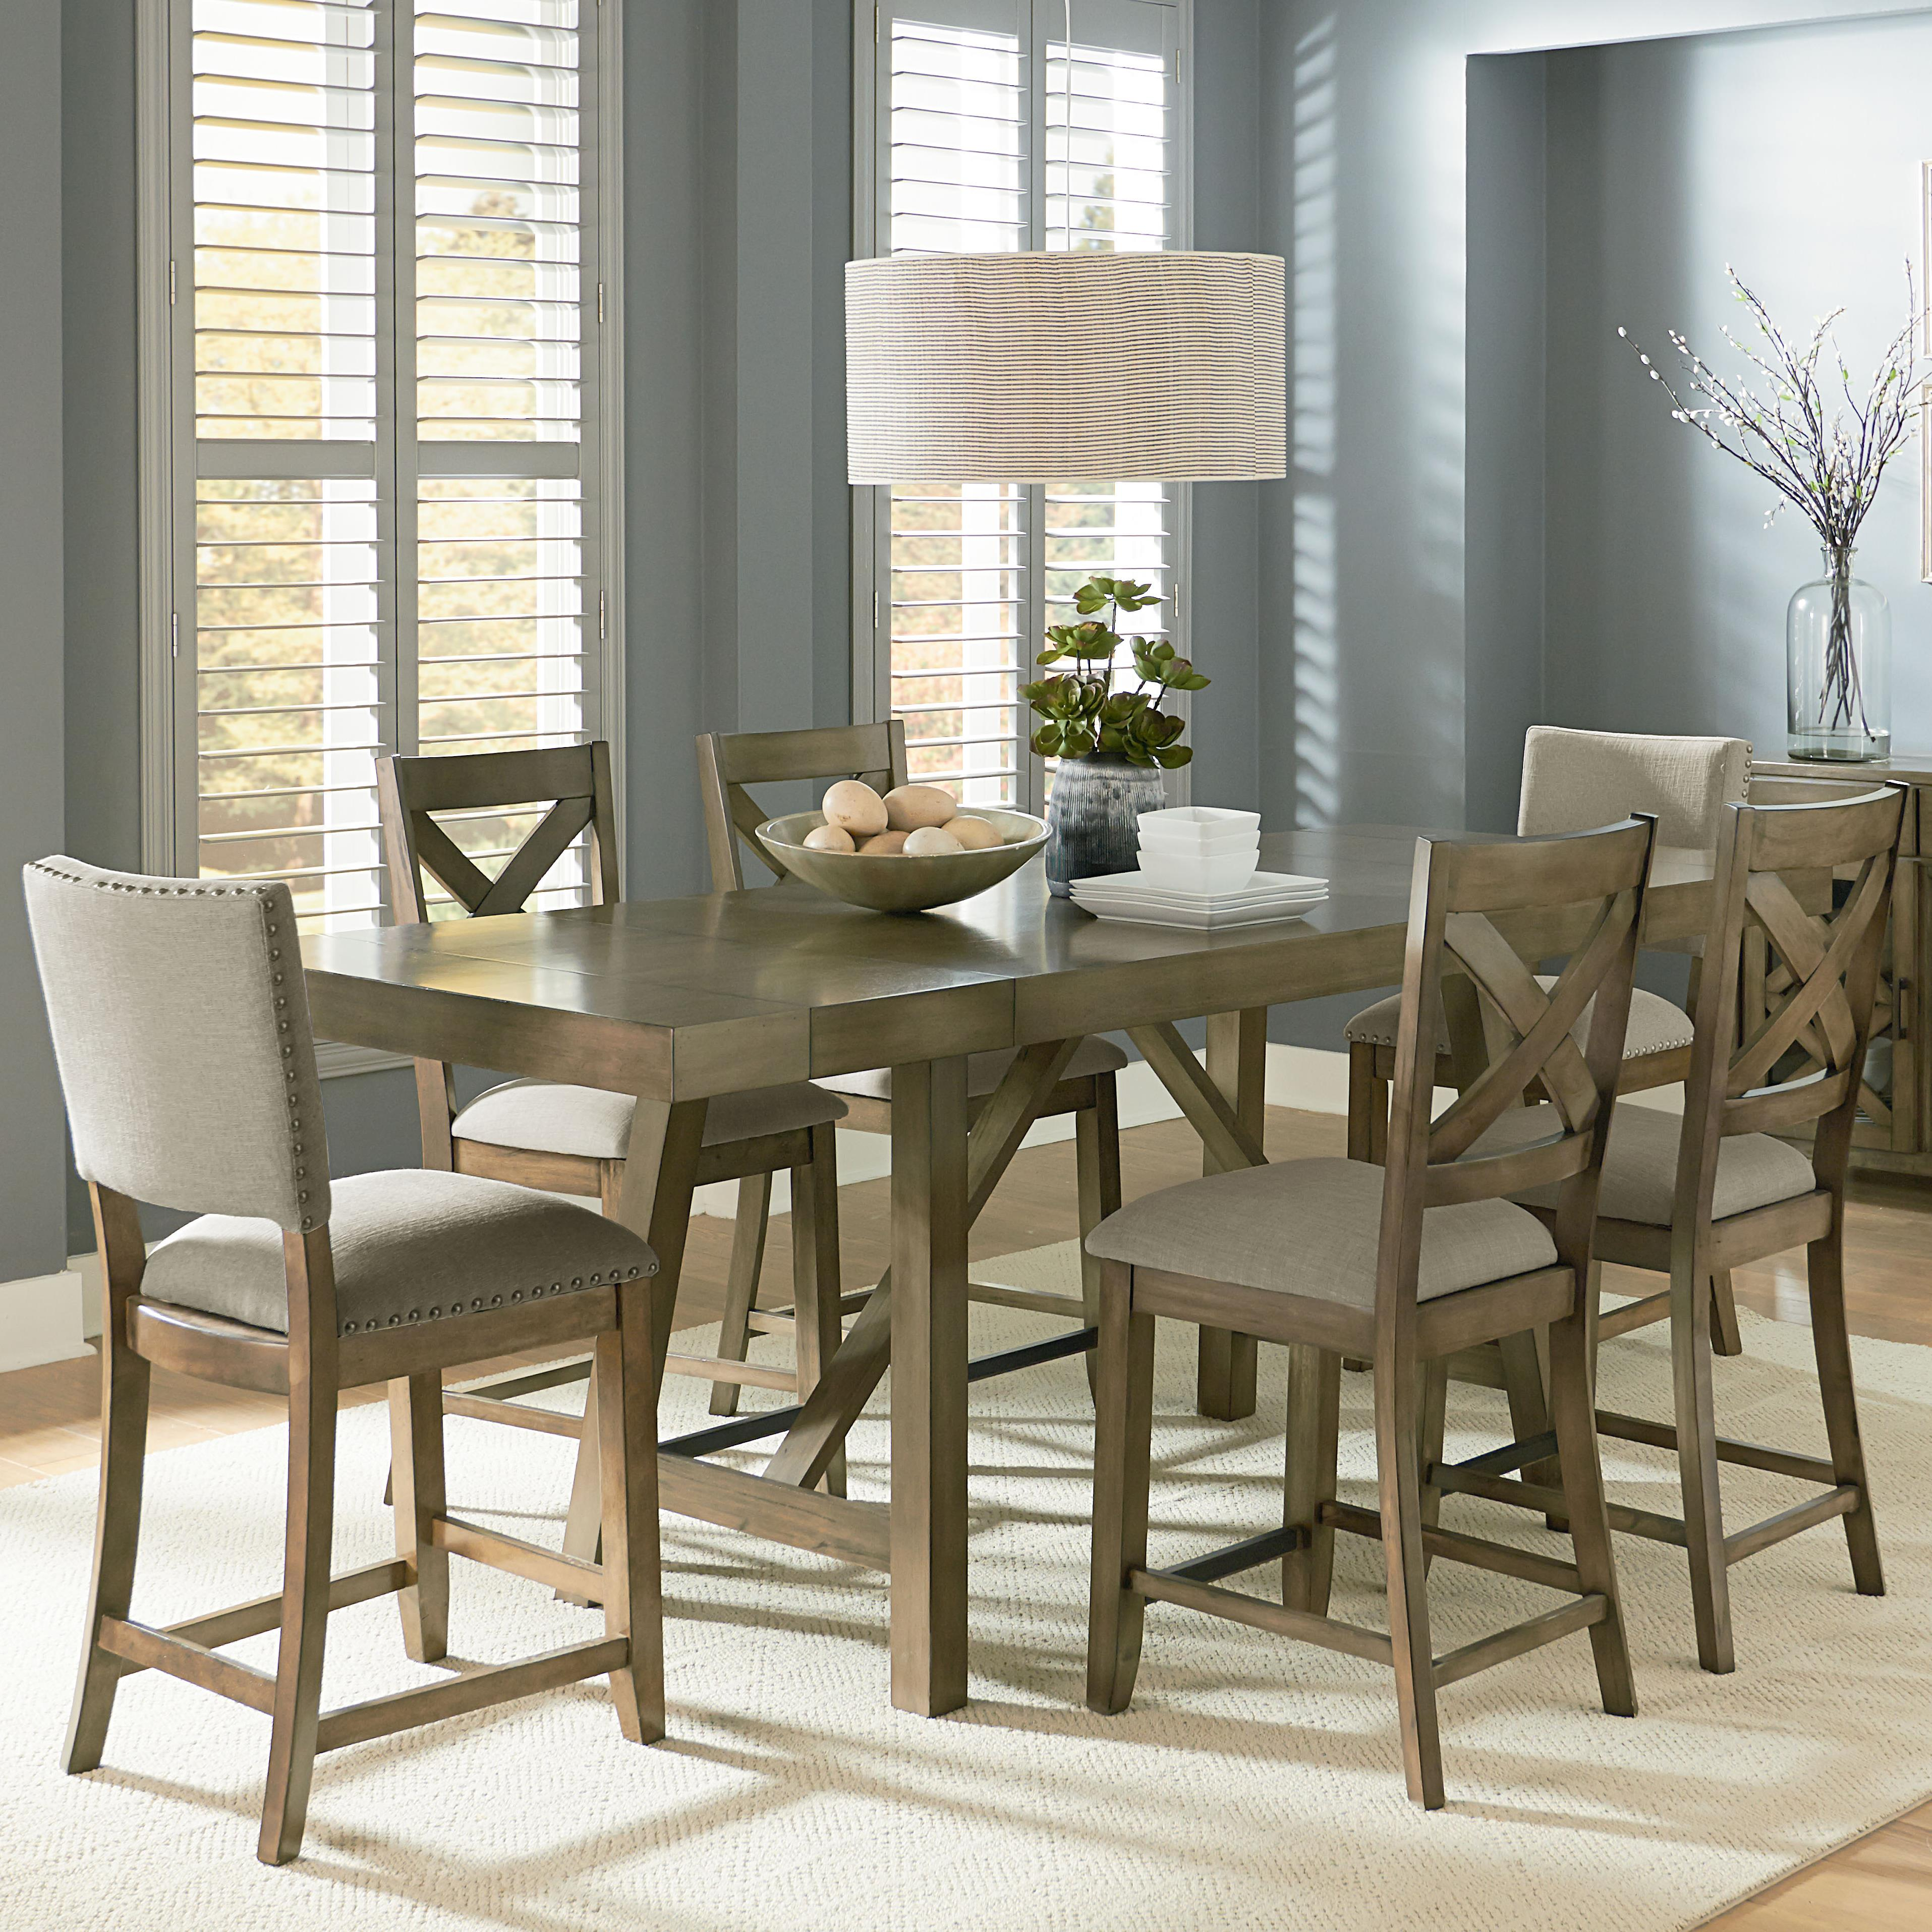 7bcdda43b915 Omaha Grey Counter Height 7 Piece Dining Room Table Set By Standard  Furniture At Dunk Bright Furniture